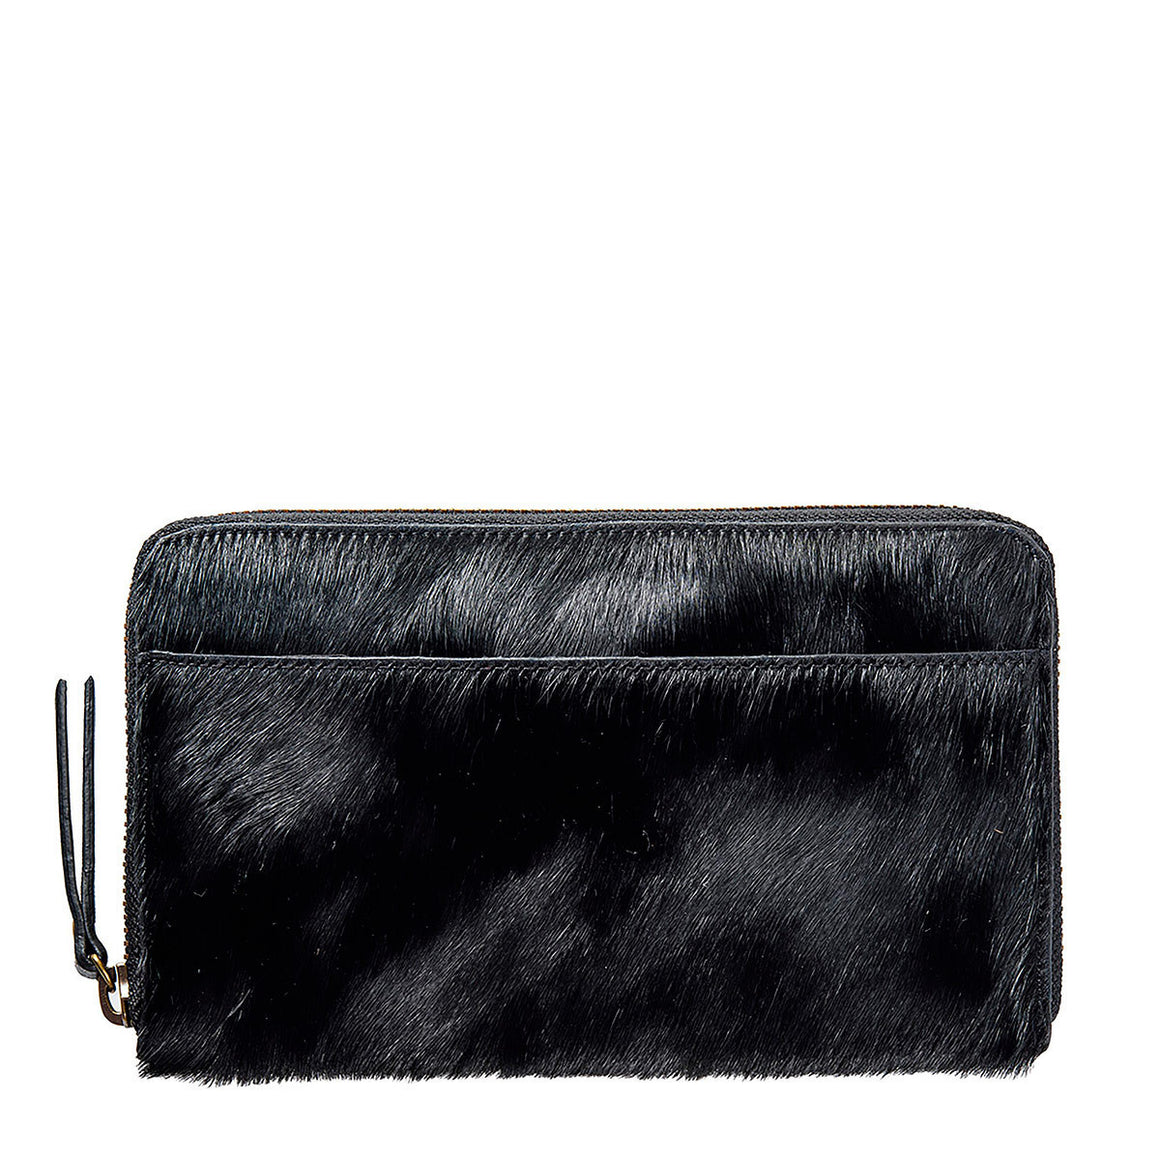 Delilah Wallet - Black